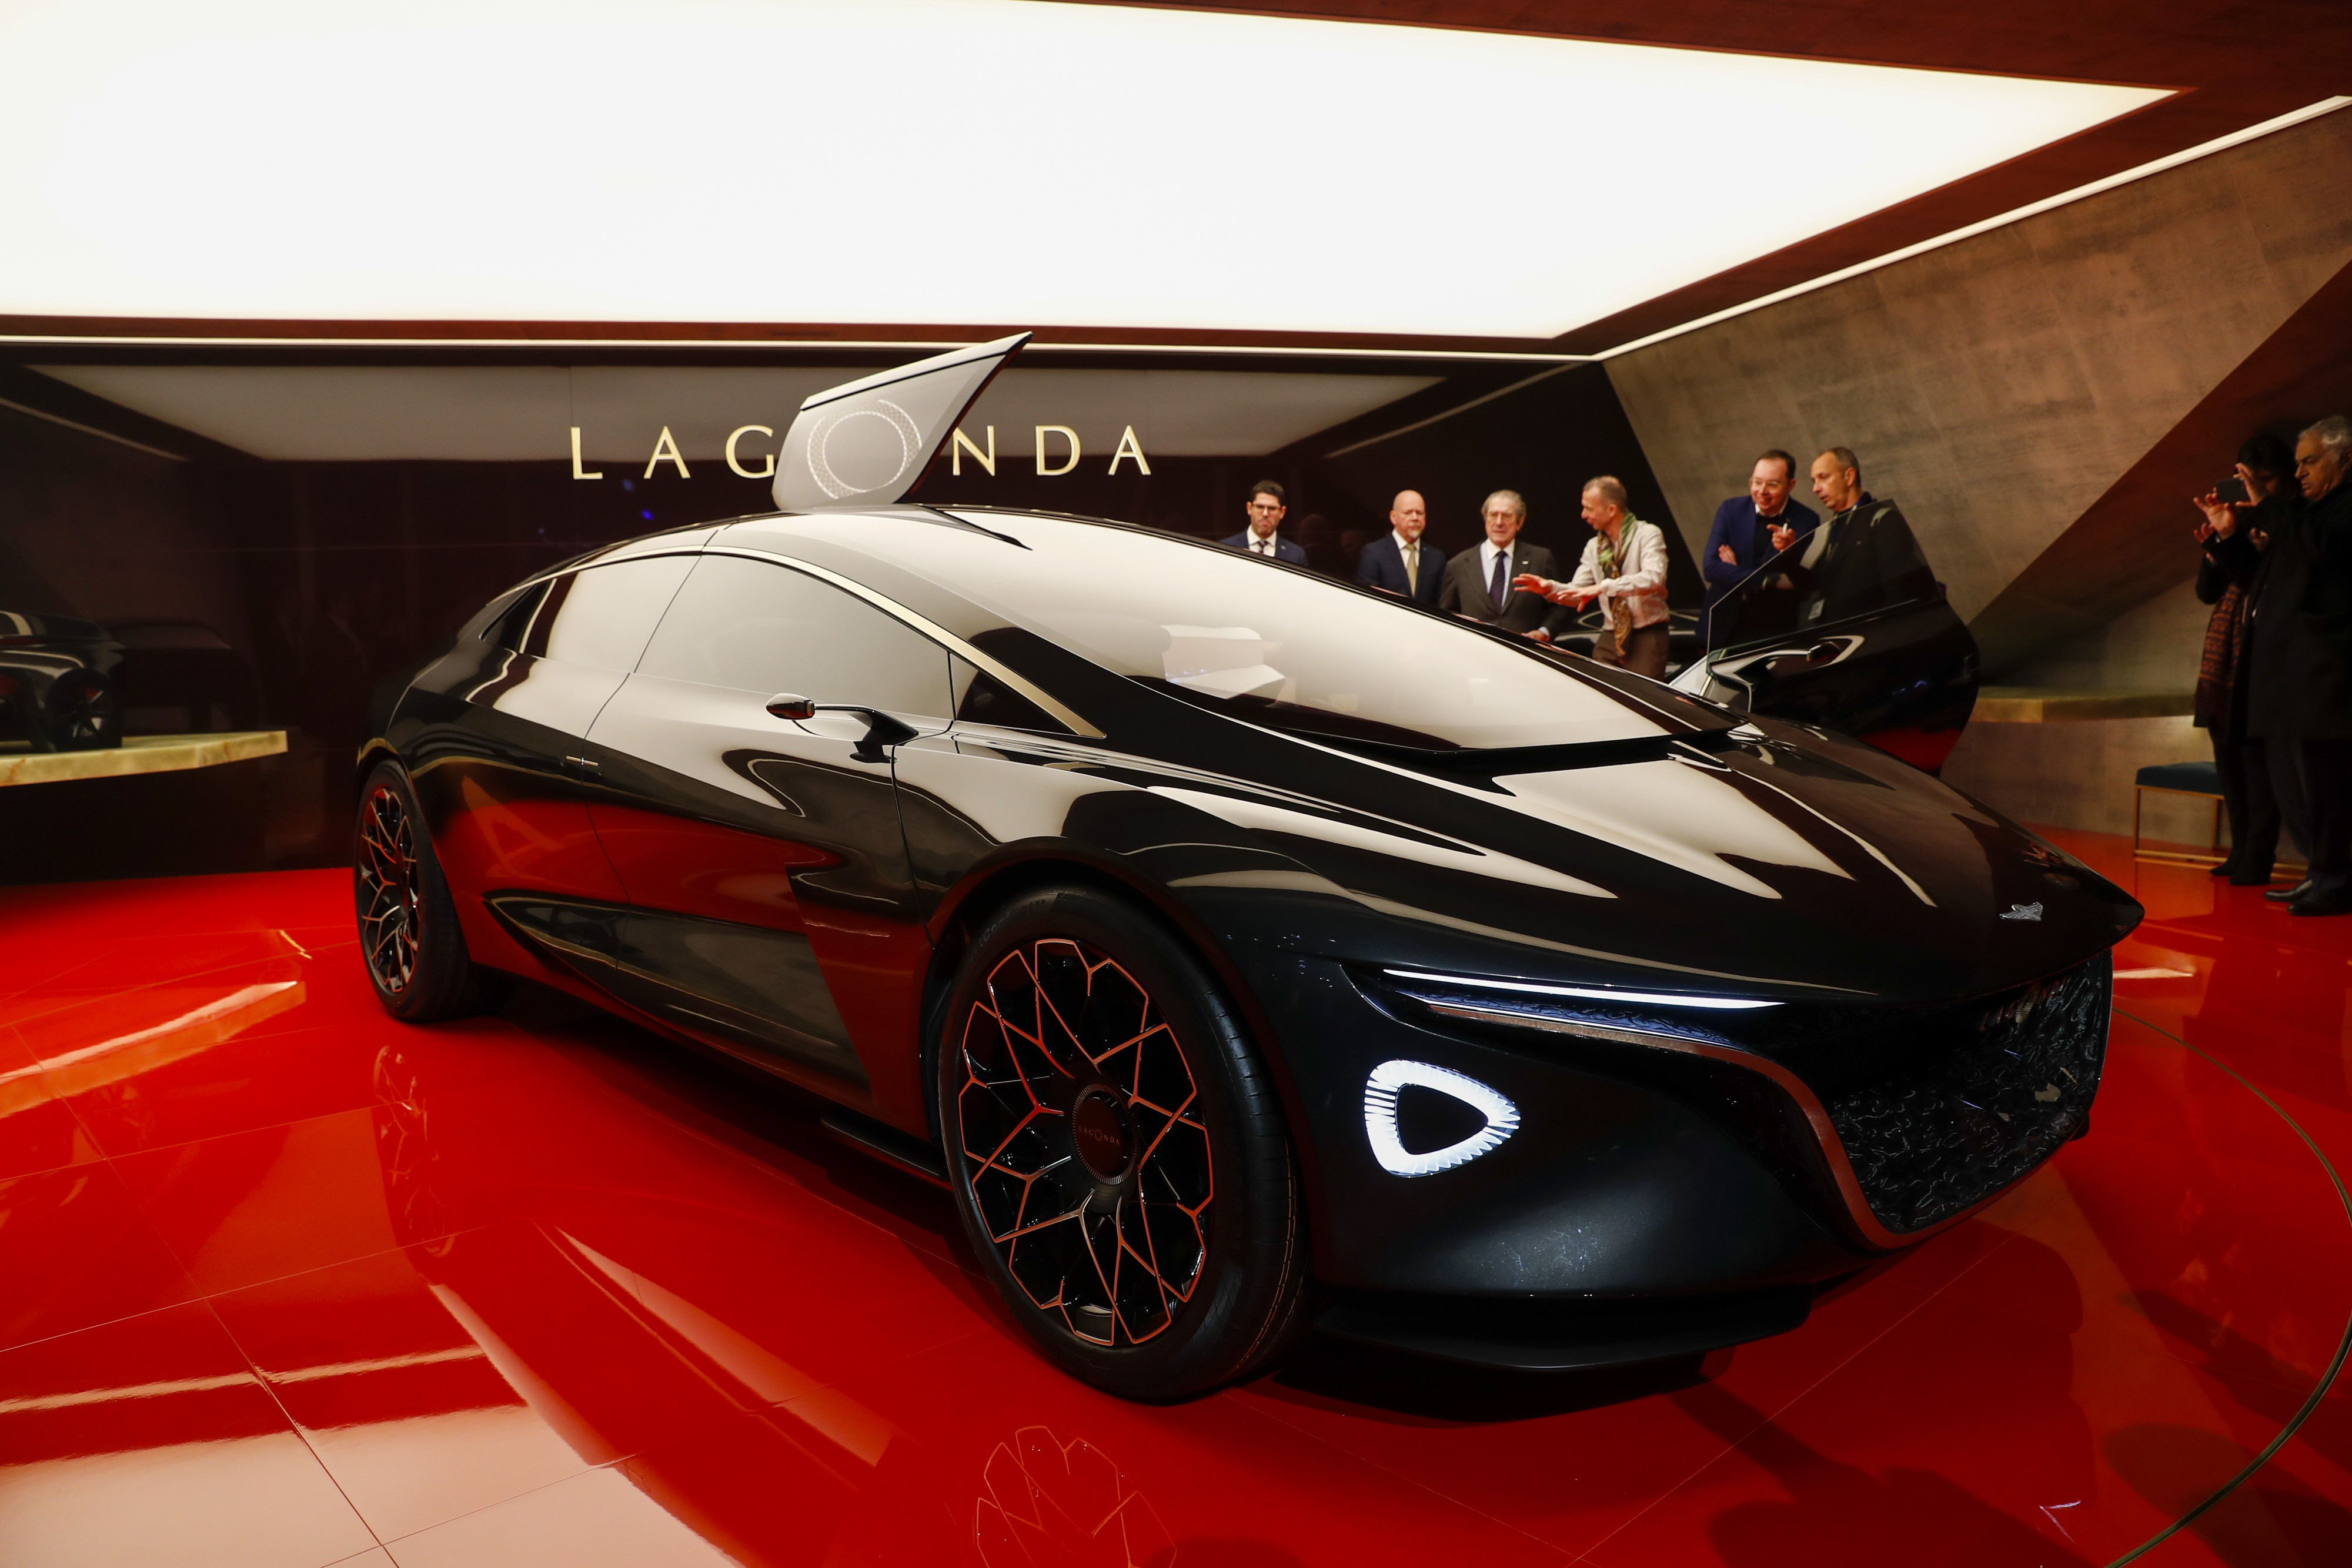 Aston Martin Revives Lagonda Luxury With An Electric Sedan Style - Car show chairs